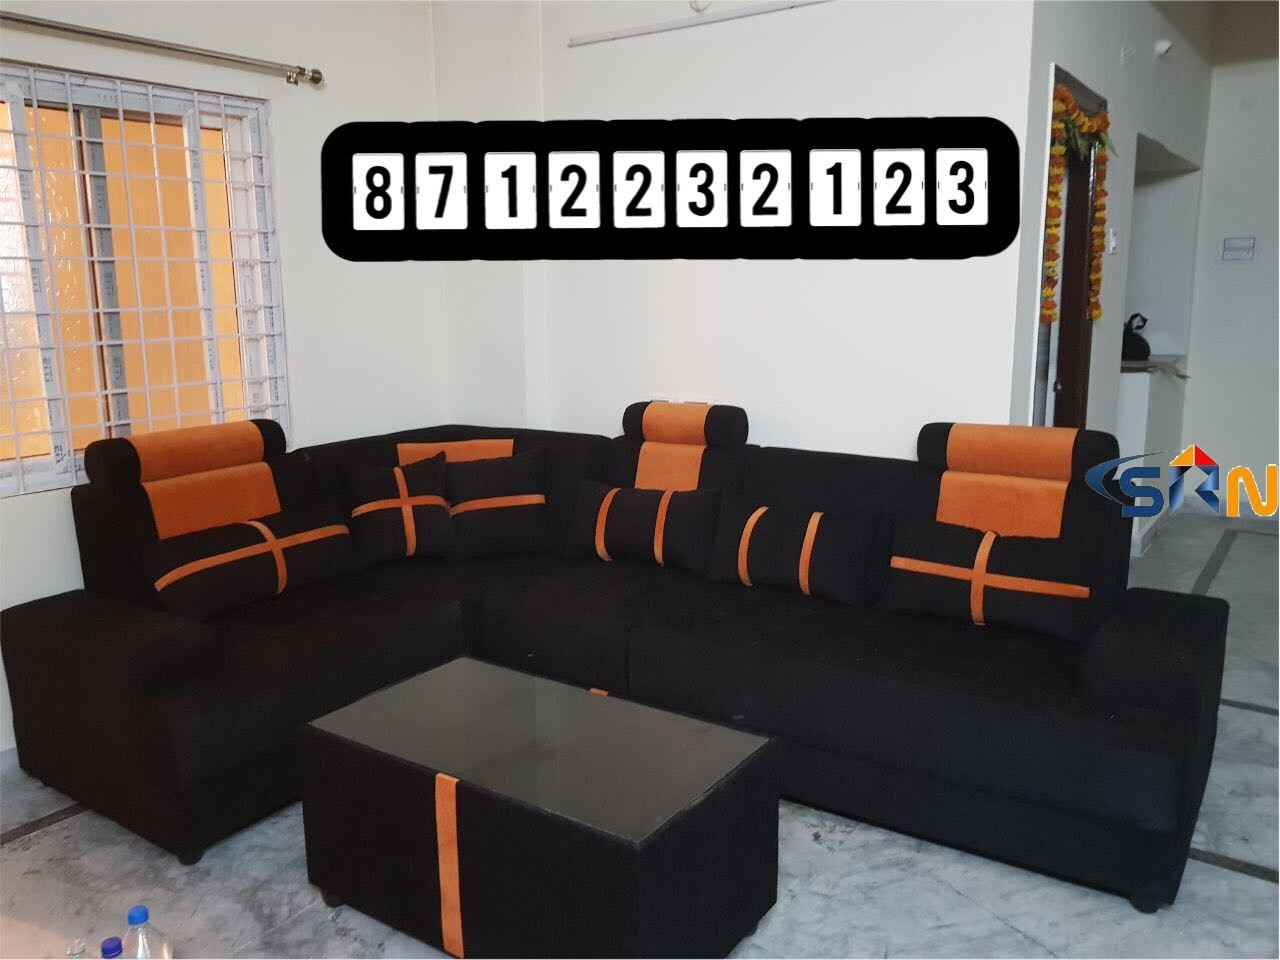 Sofa Sales in Hyderabad 87122 32123